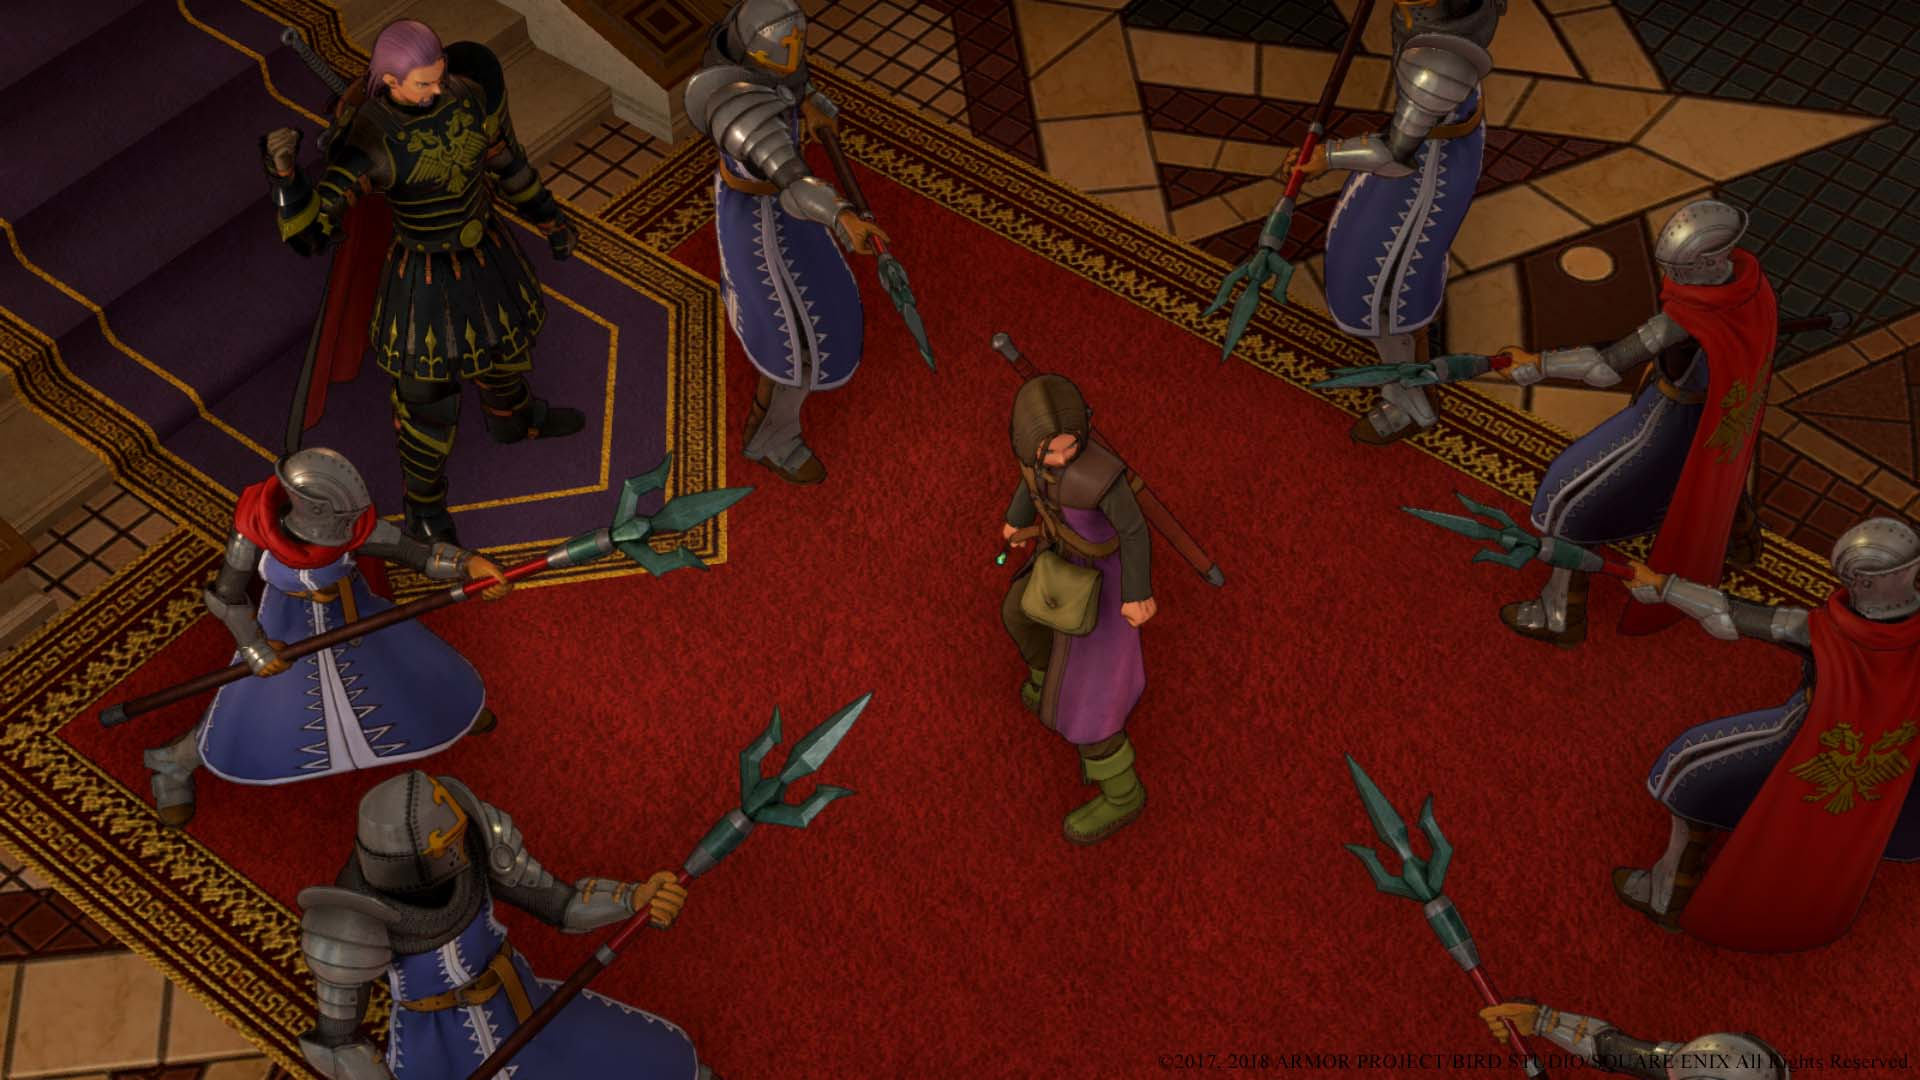 Dragon Quest Xi Review The King Slime Returns To Retake The Throne Niche Gamer Our dragon quest xi costumes guide will guide you through the process of unlocking each and every single costume for your party. dragon quest xi review the king